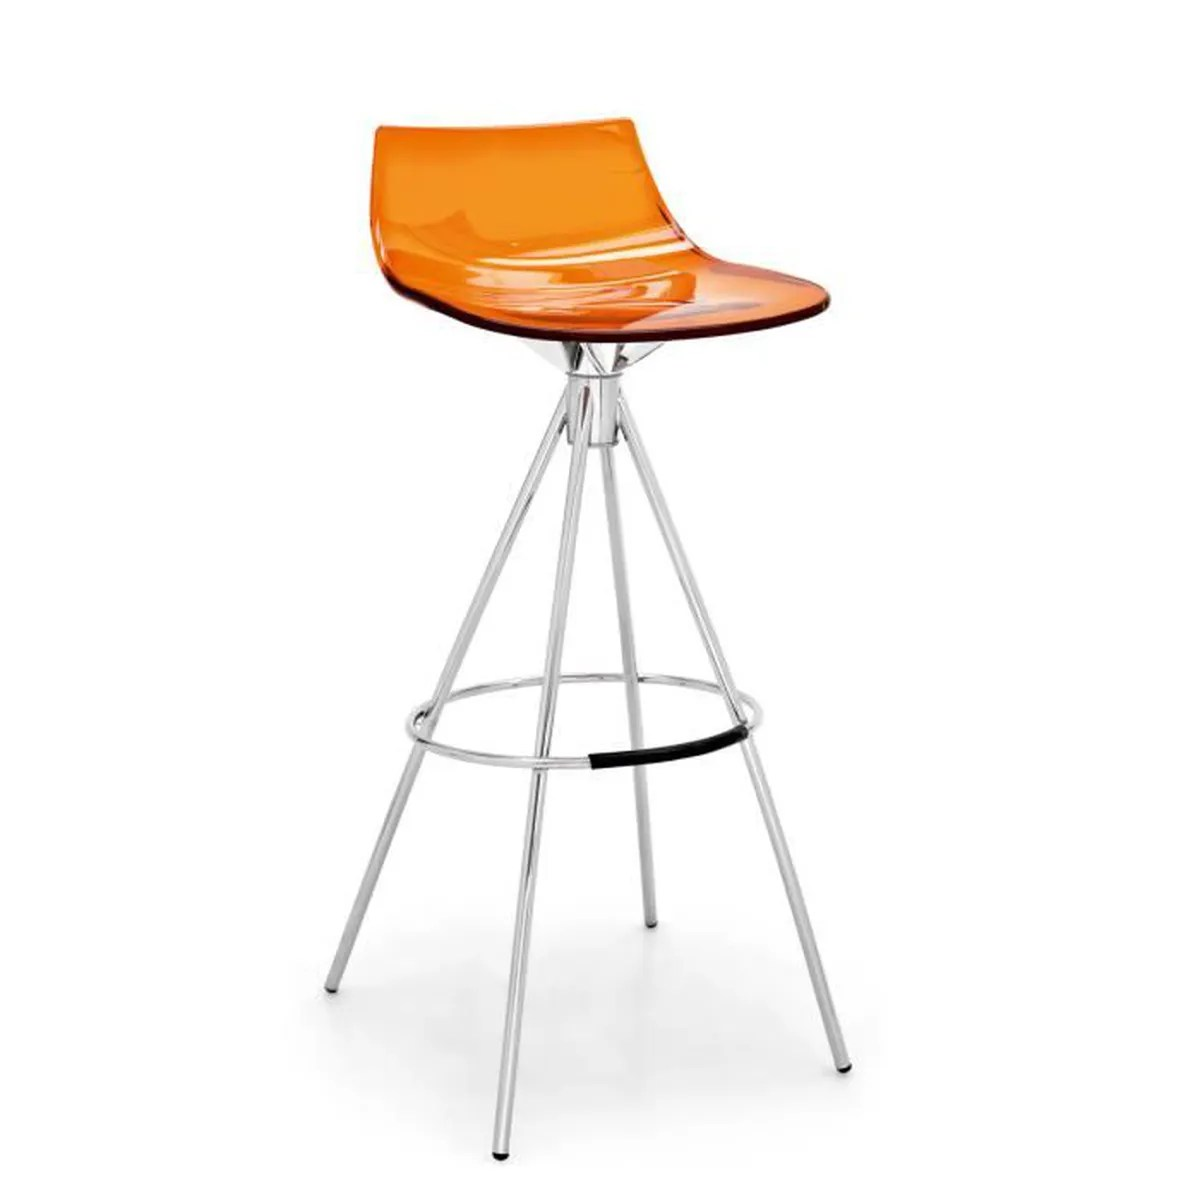 Tabouret De Bar Assise 65 Tabouret De Bar Led Orange Assise 65 Cm Métal Orange Achat